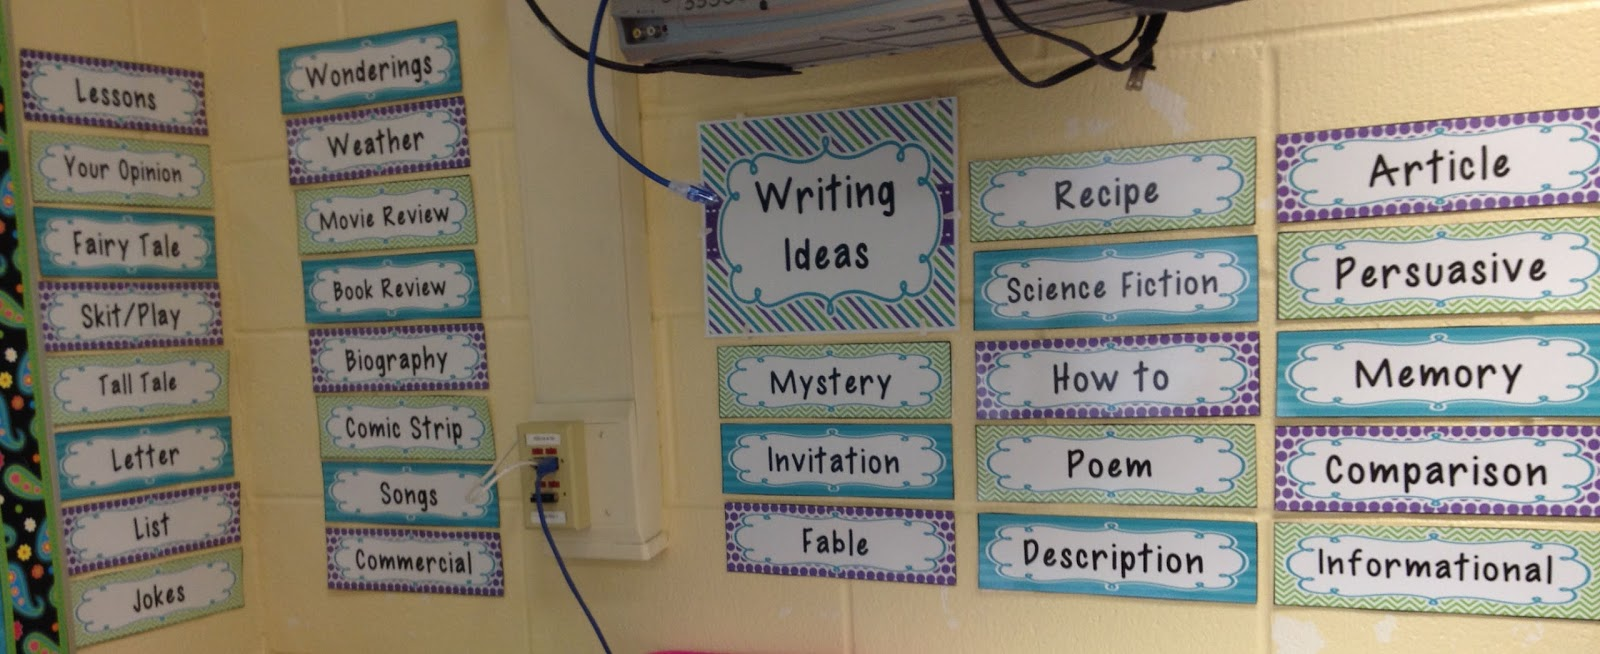 http://www.teacherspayteachers.com/Product/Writing-Ideas-772691